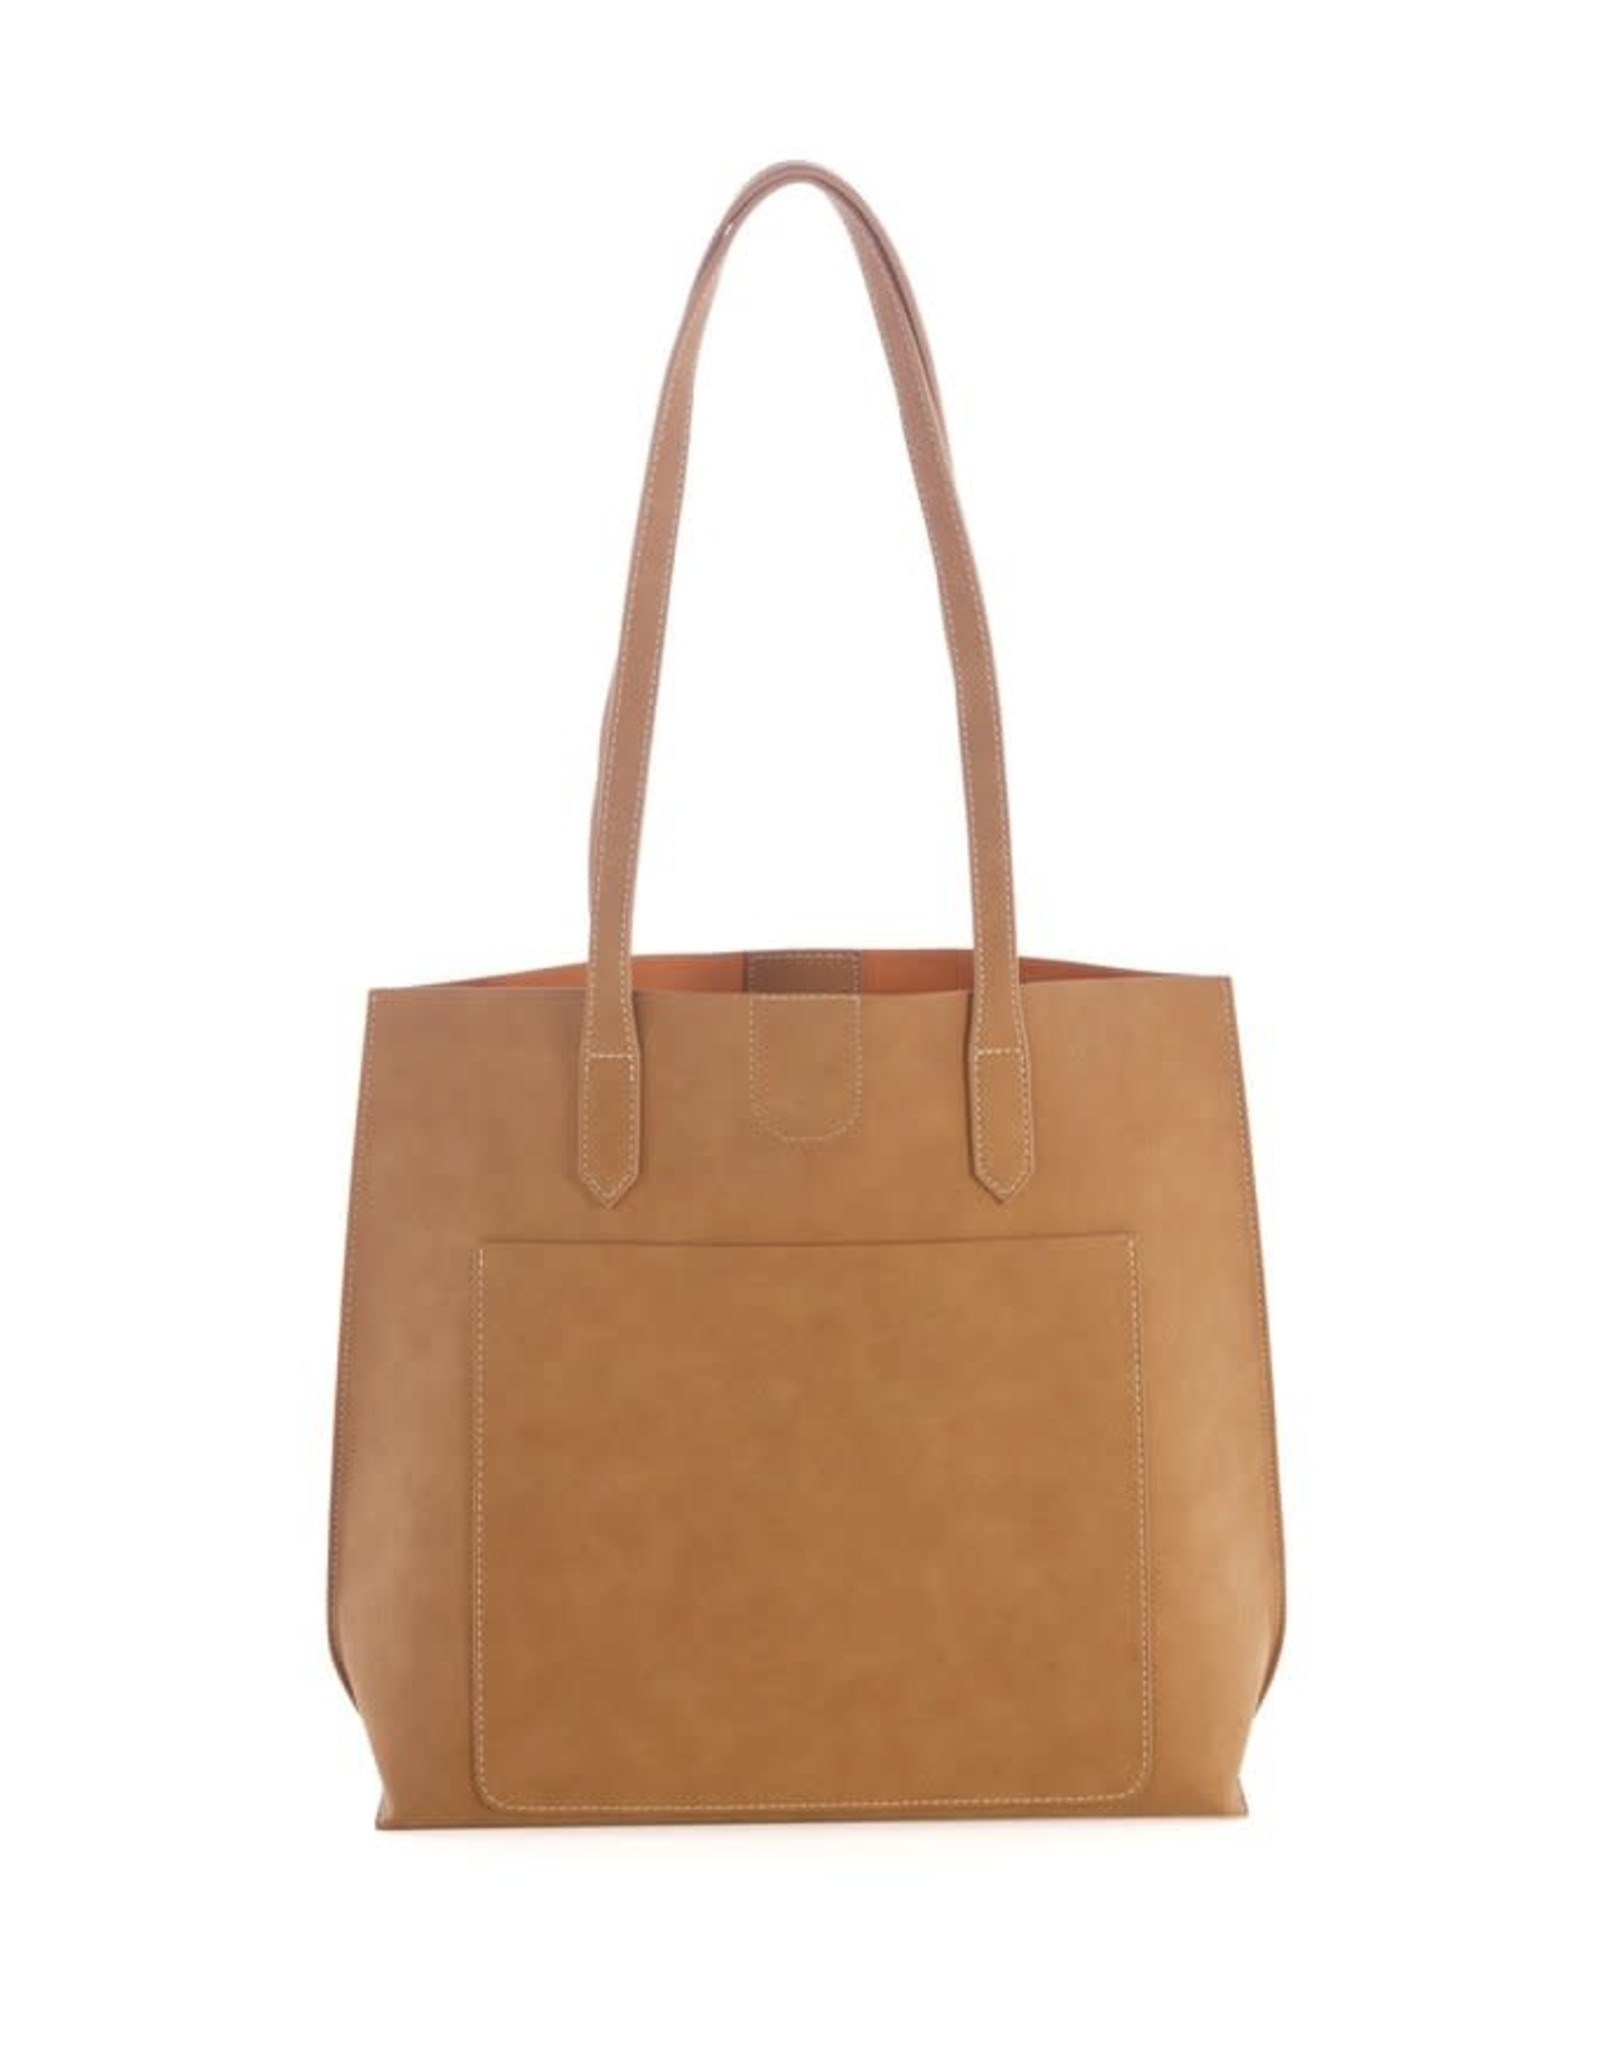 The Day Tote